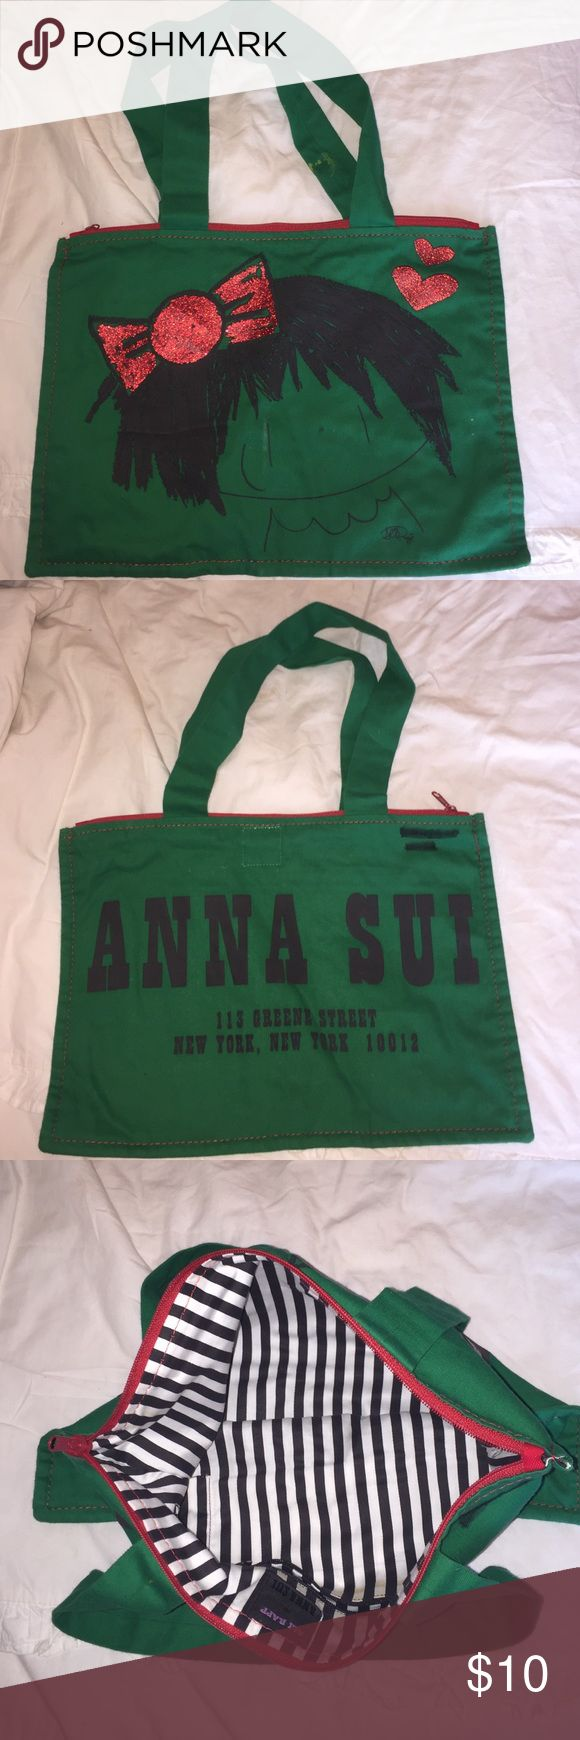 Anna Sui Tote This tote is gently used. 2 things to notice: 1. Paint stains on handles (shown in picture 1) 2. Black sharpie on back (shown in picture 2). Anna Sui Bags Totes